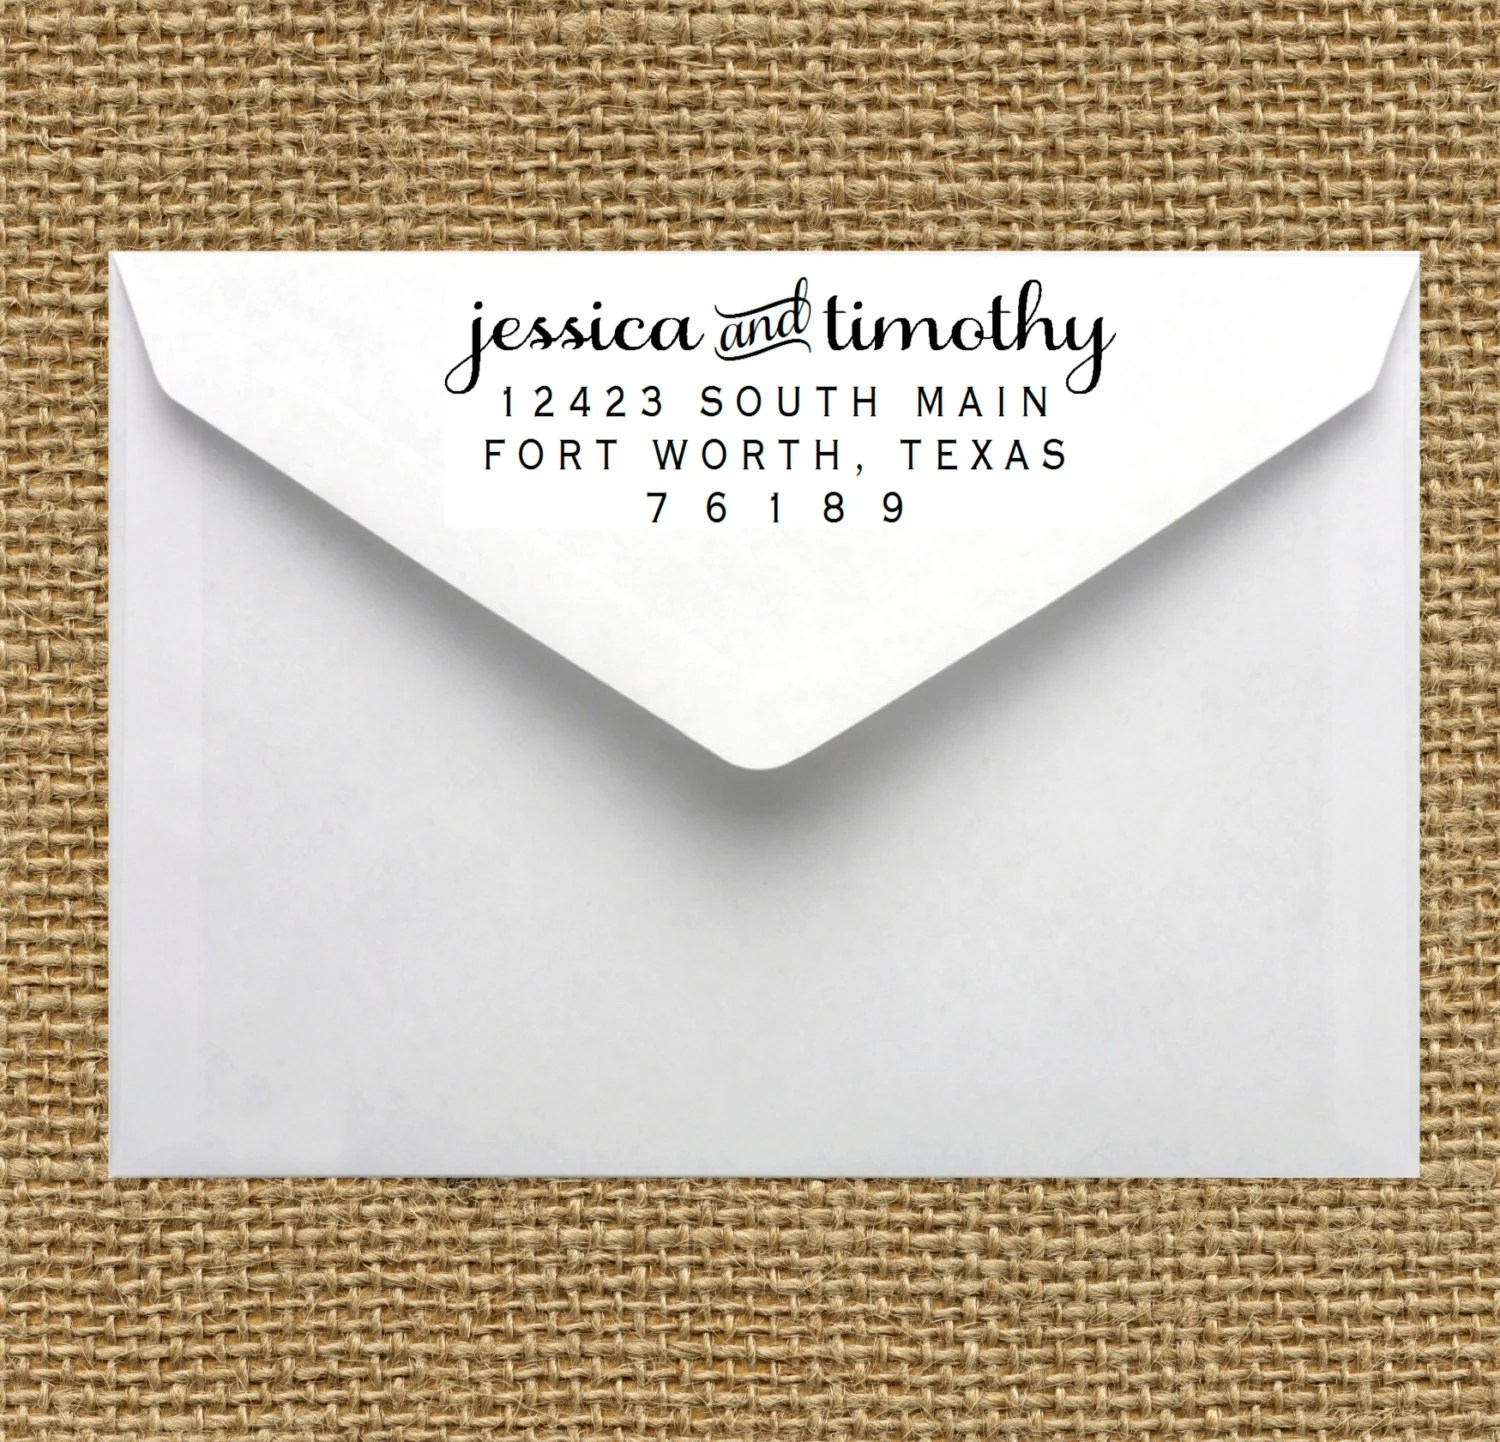 CUSTOM Self-Inking Personalized Return Address Stamp Wedding Save the Date Anniversary - hellopaperie